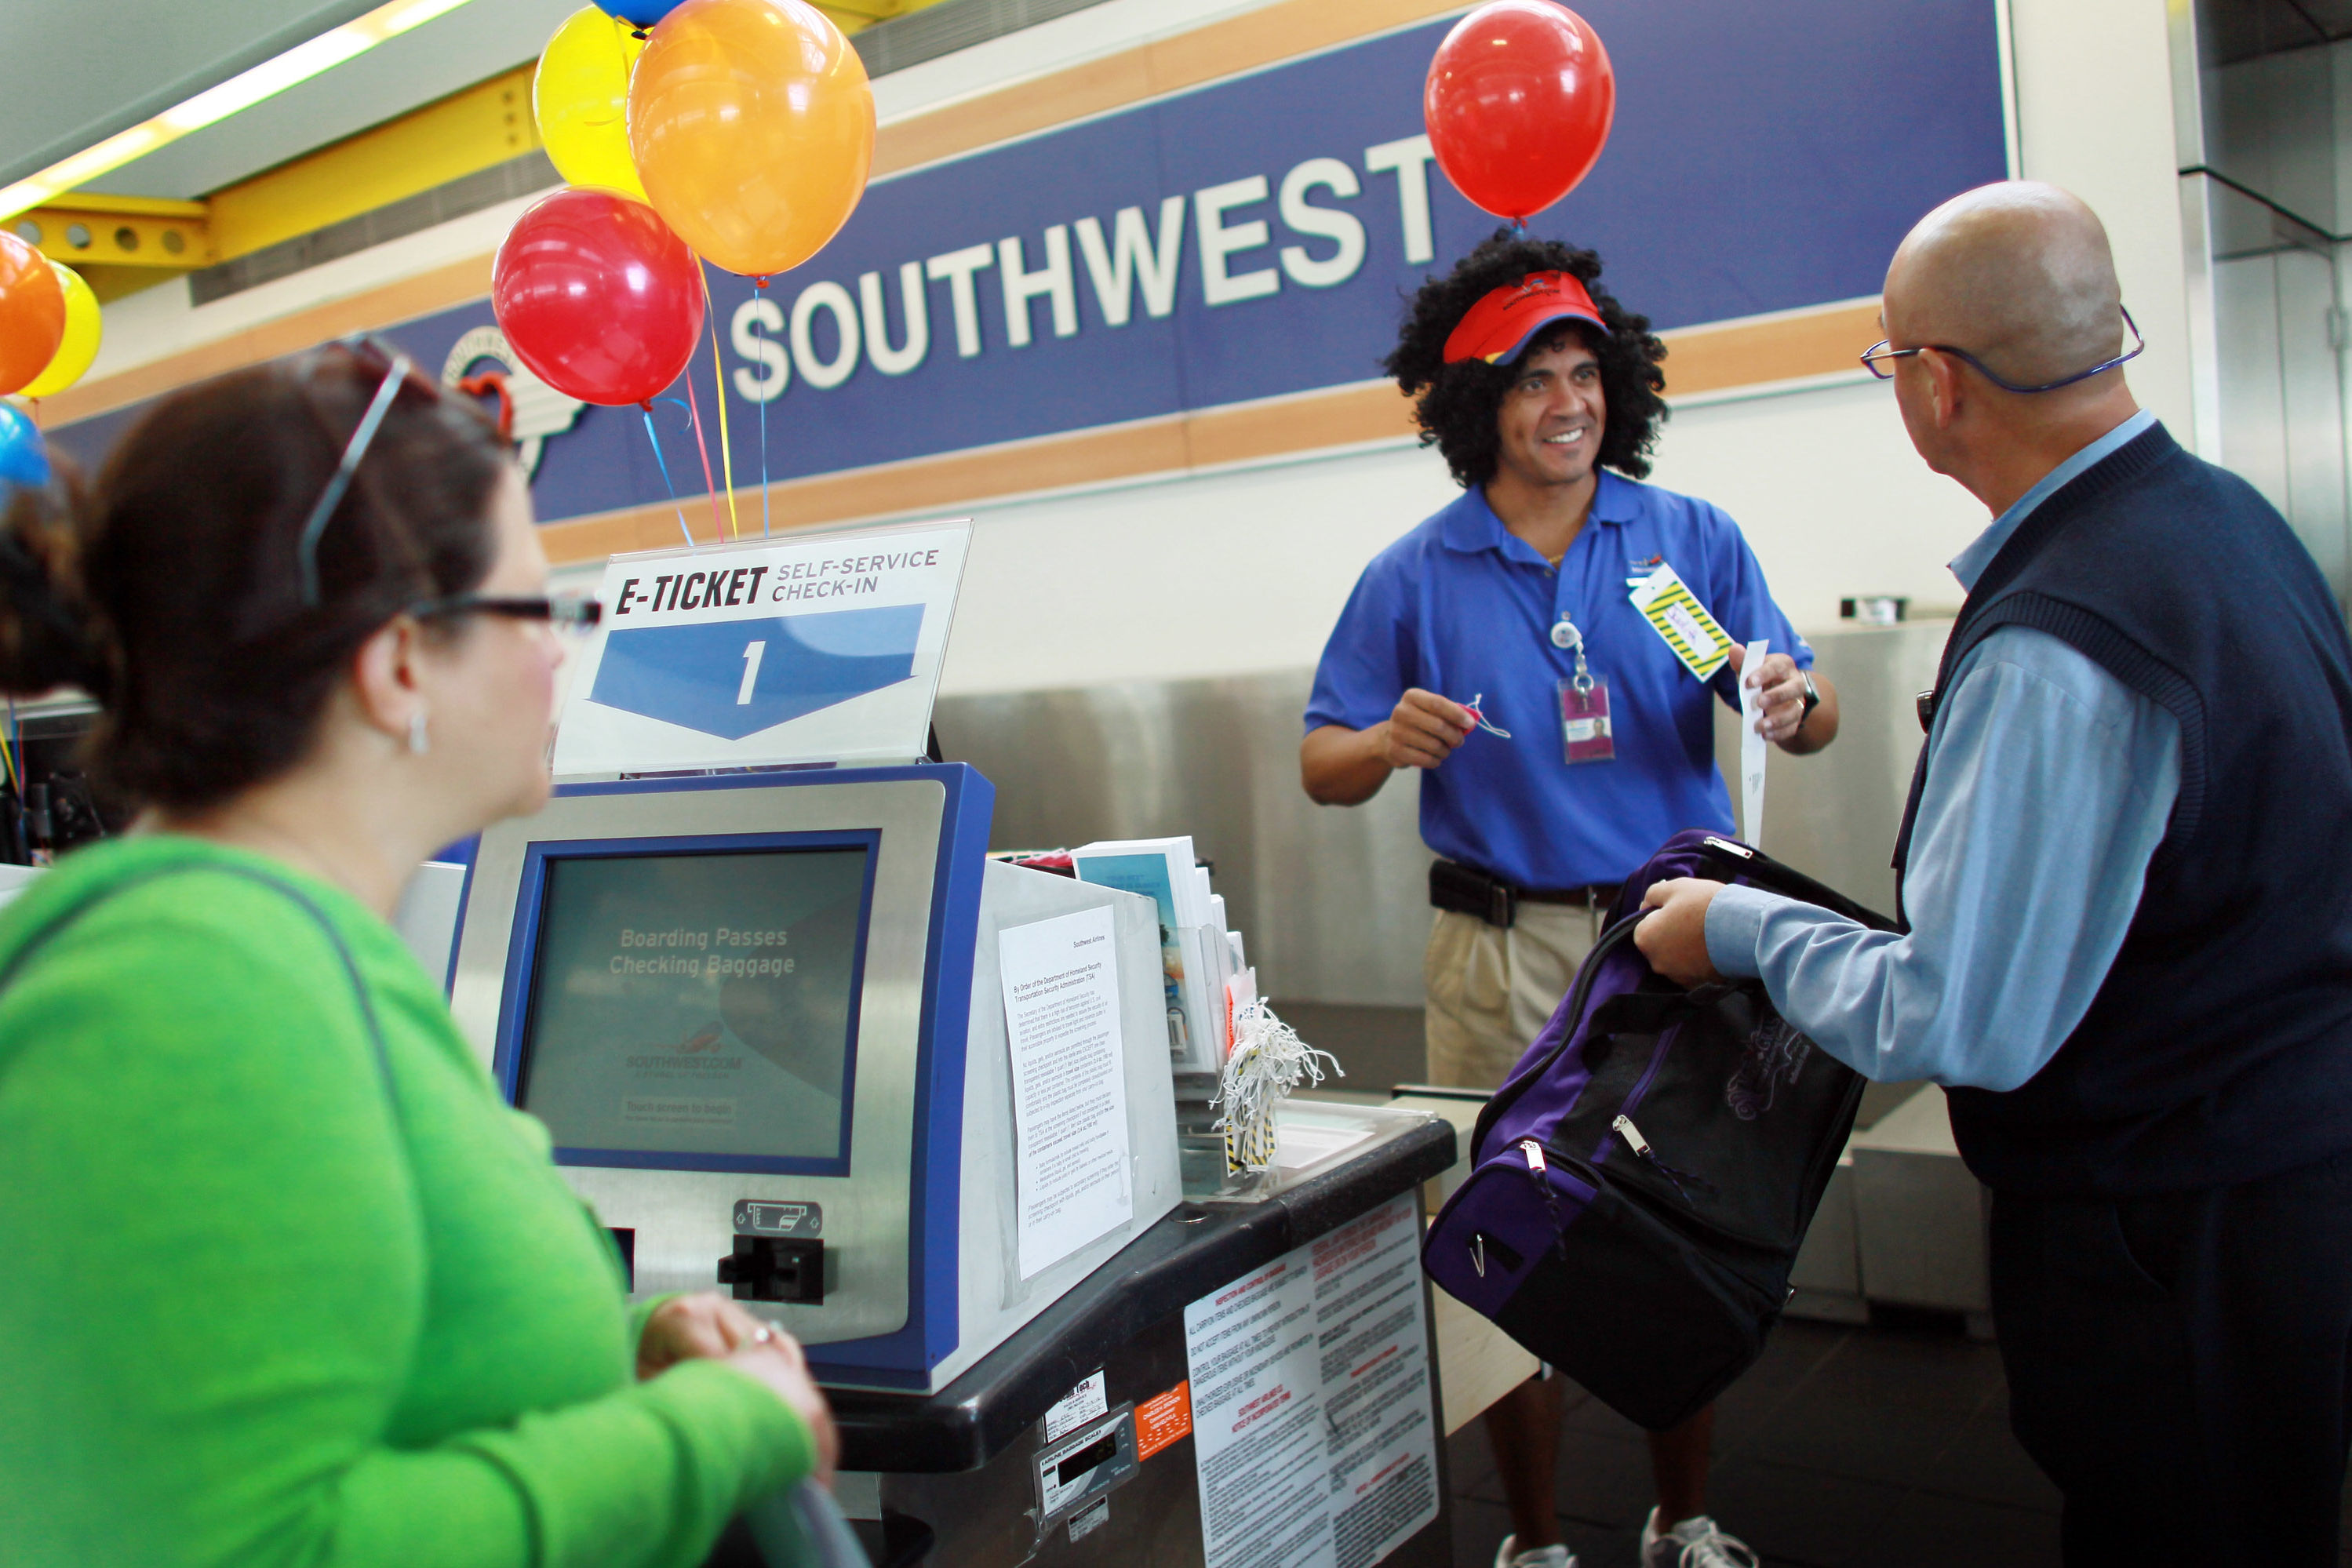 Southwest Airlines to Teach Dallas Hospitality Workers A Lesson on Service with a Smile